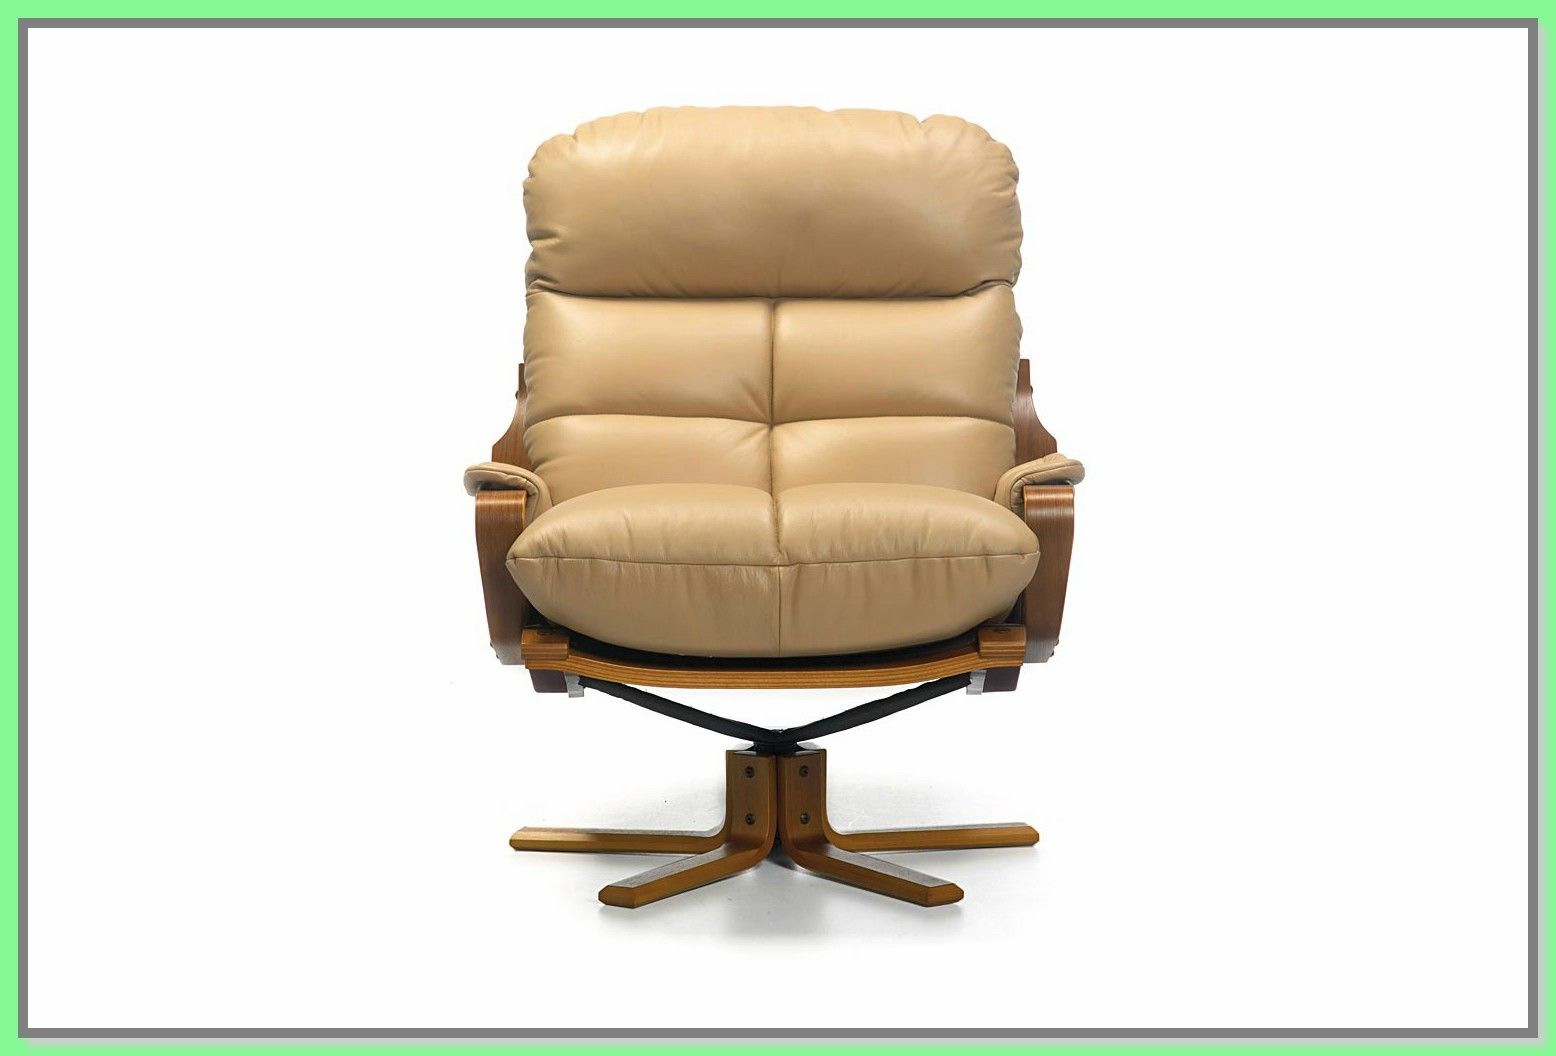 79 Reference Of Swivel Chair Price In Ghana In 2020 Chair Striped Dining Chairs Chair Price